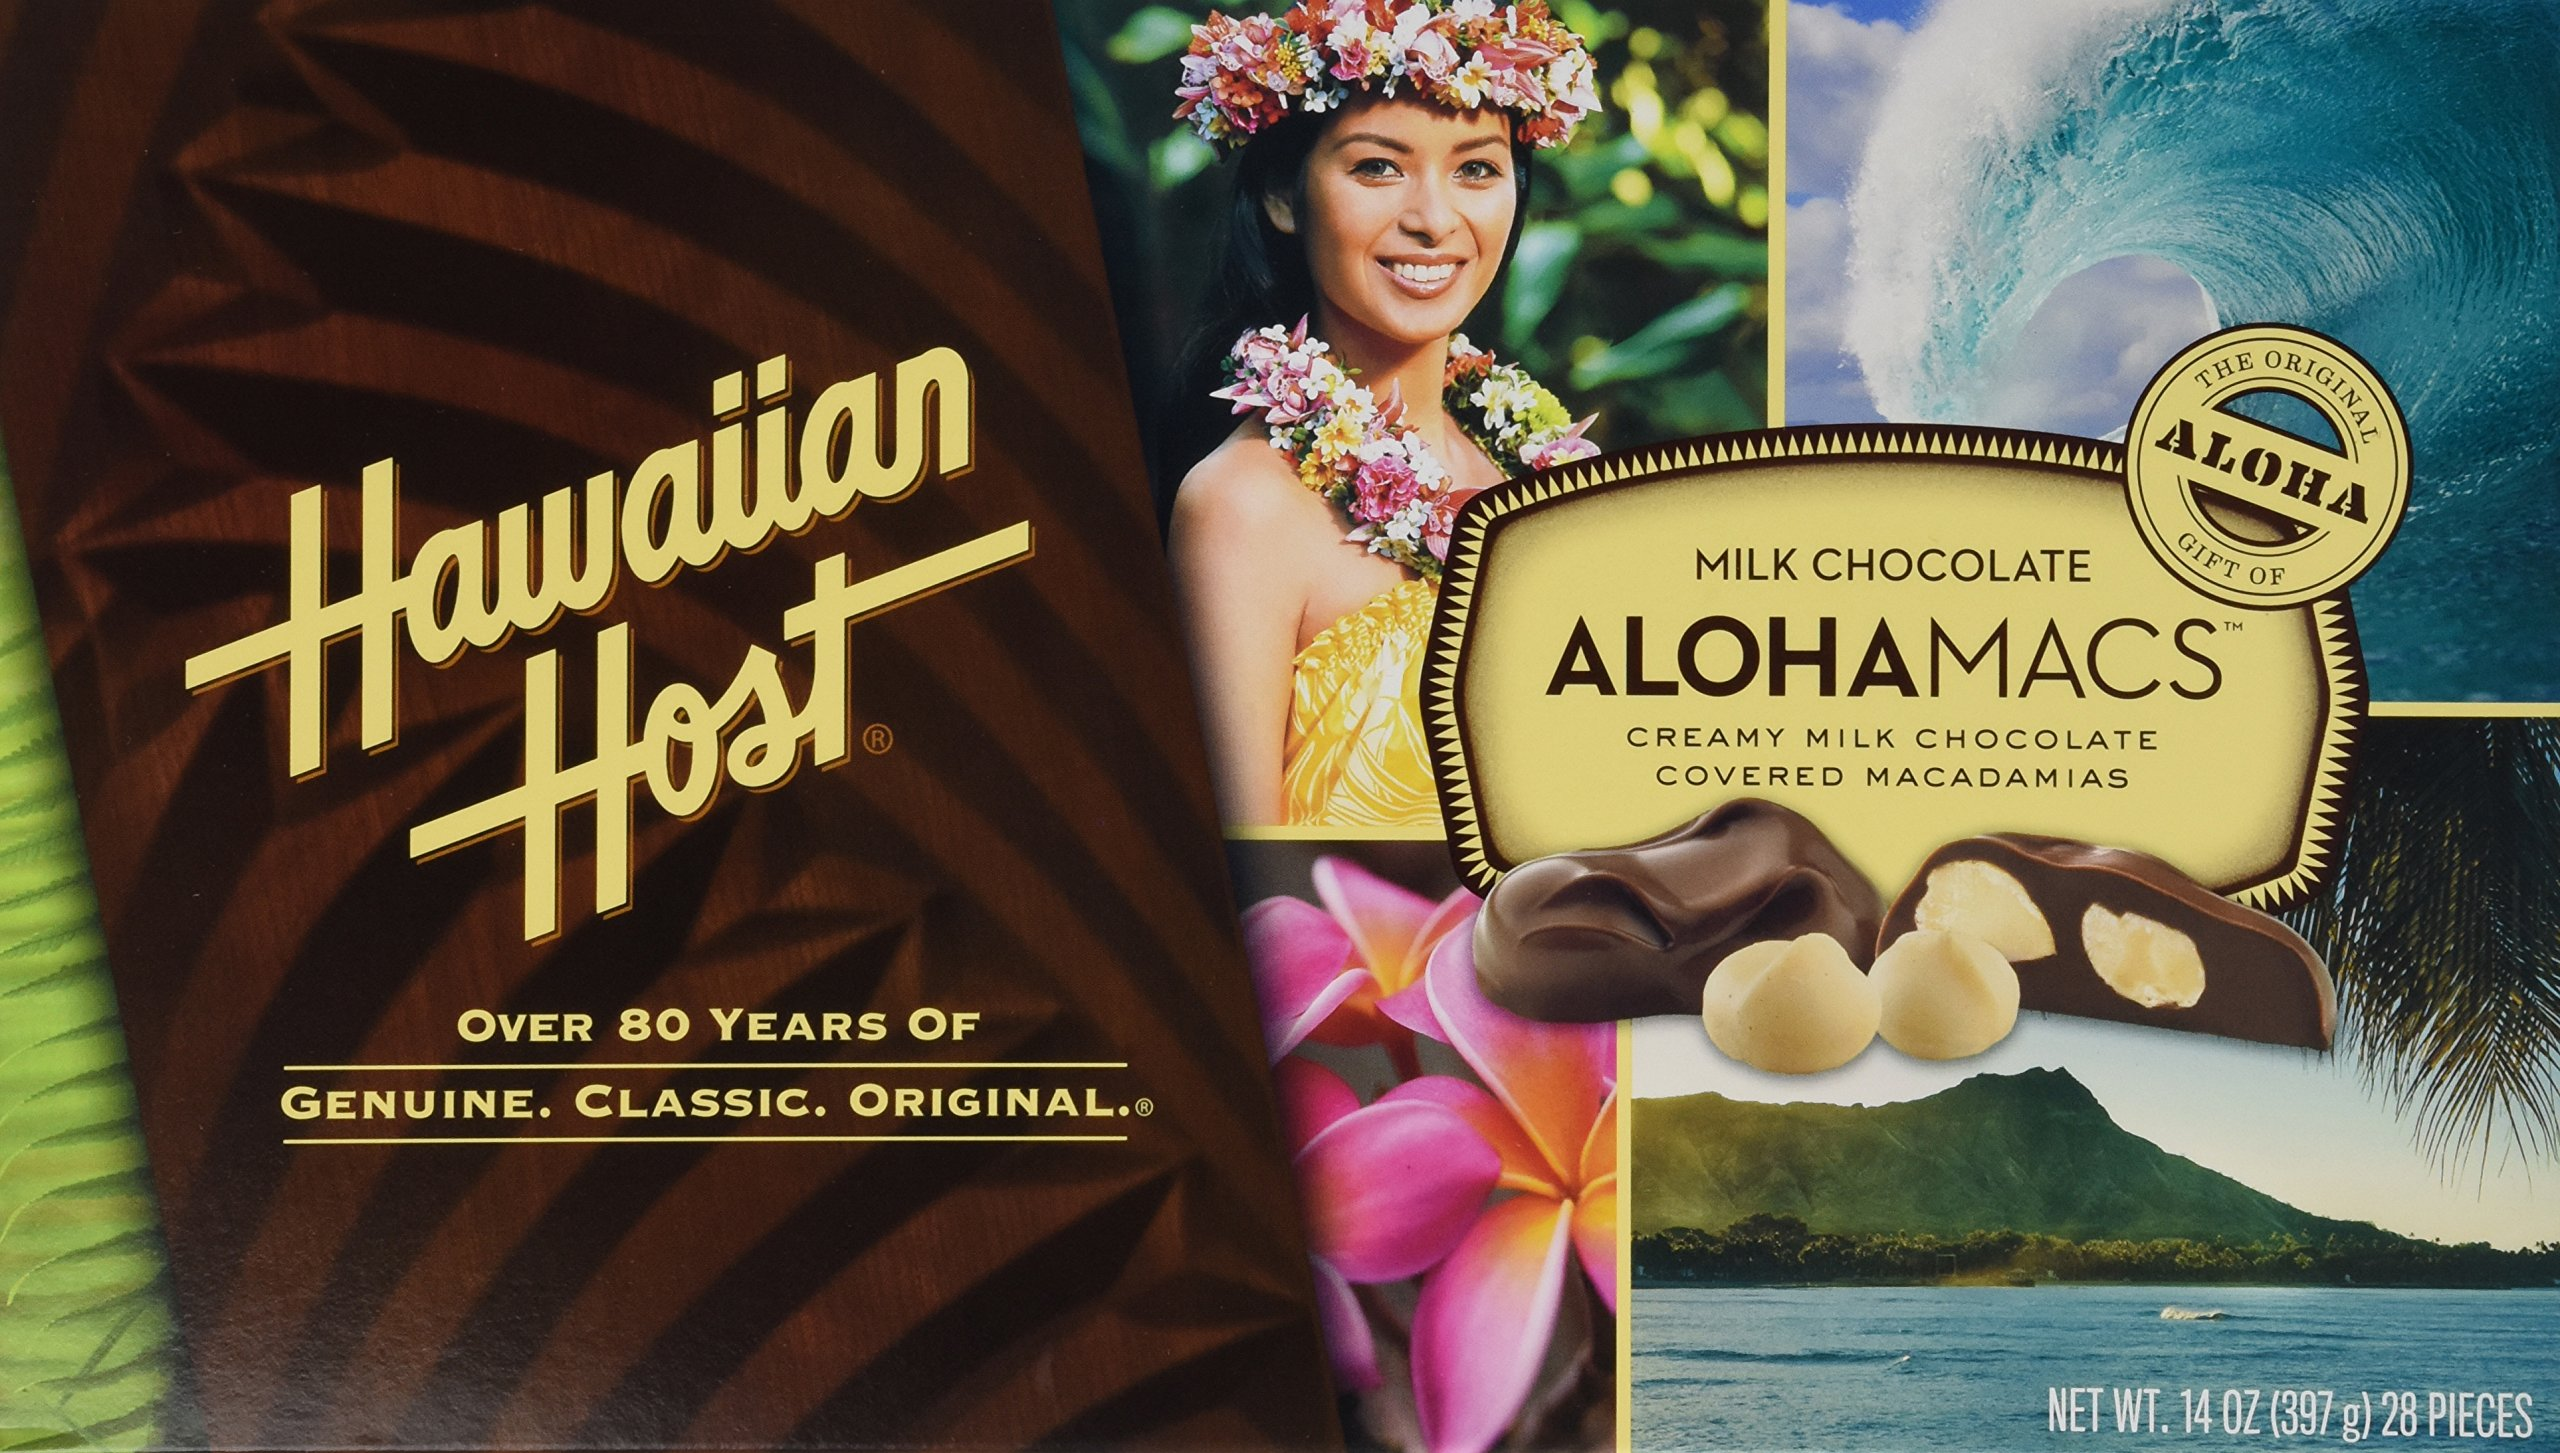 Hawaiian Host Alohamacs Milk Chocolate The Original Chocolate Covered Macadamia Nut, 14 Ounce